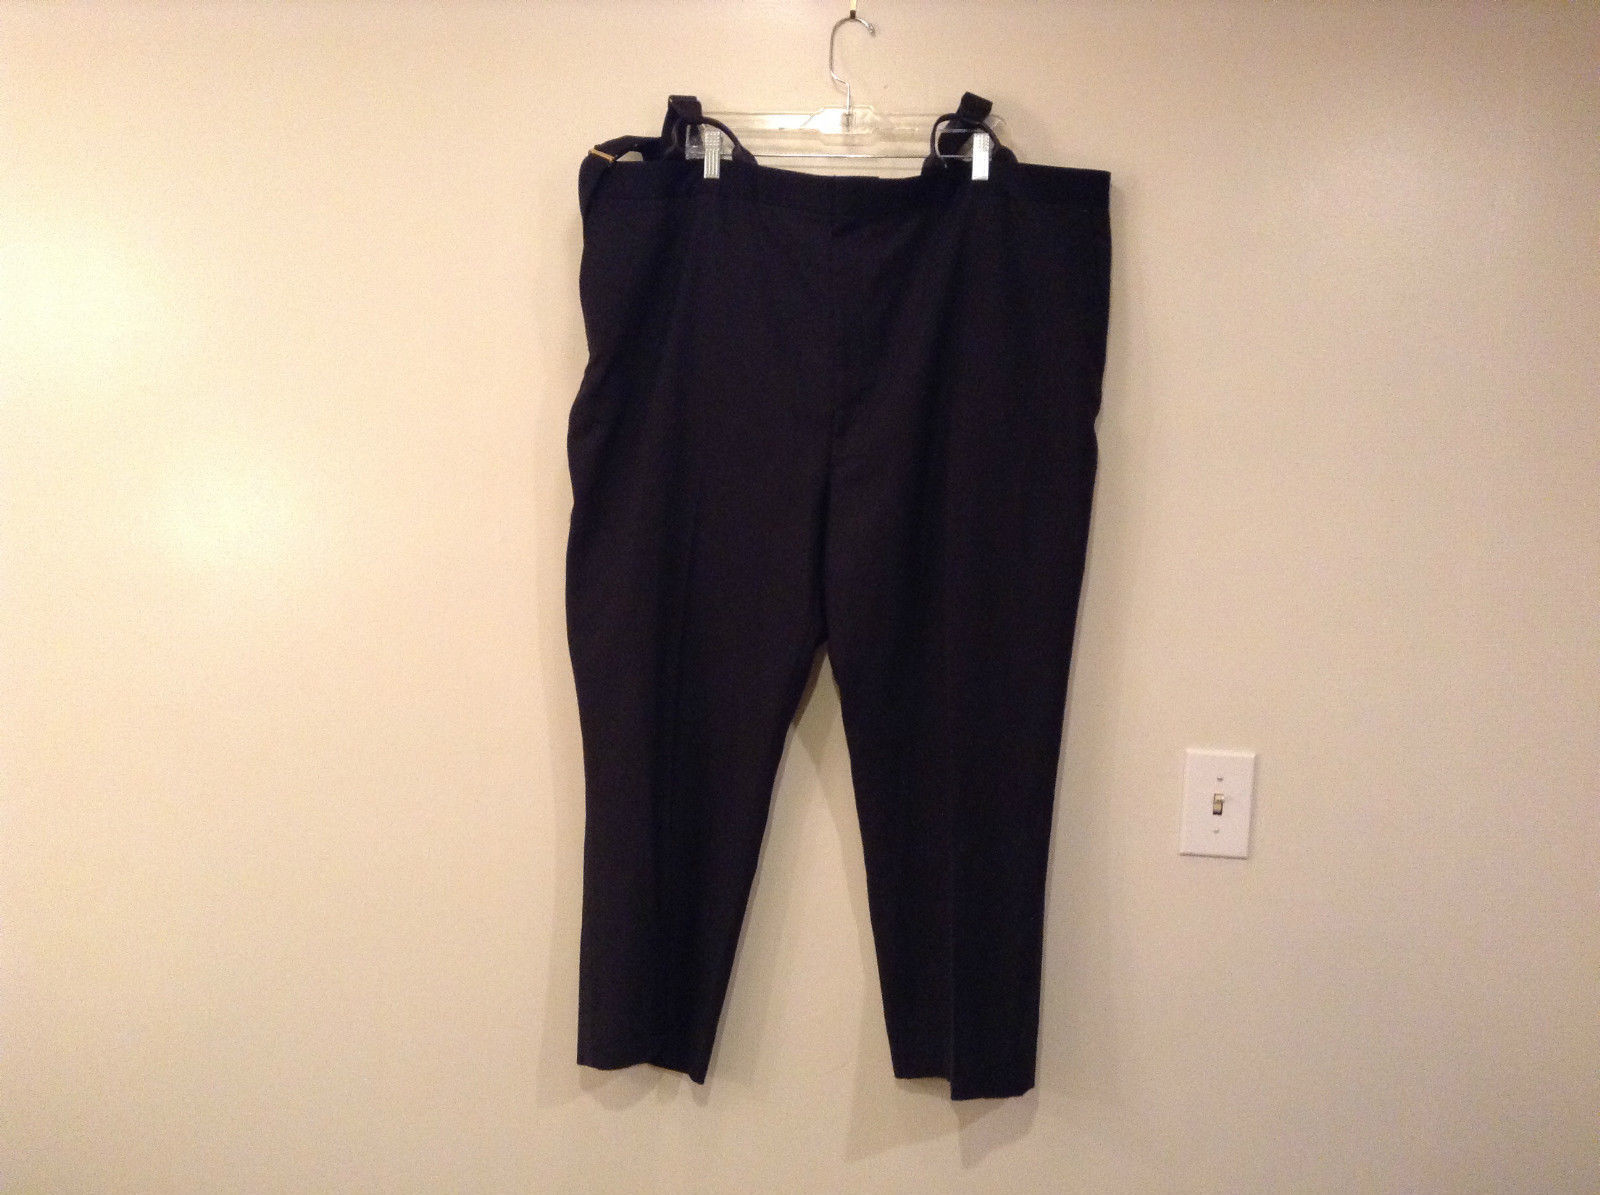 Black Pleated Front Dress Pants with Suspenders No Size Tag Measurements Below